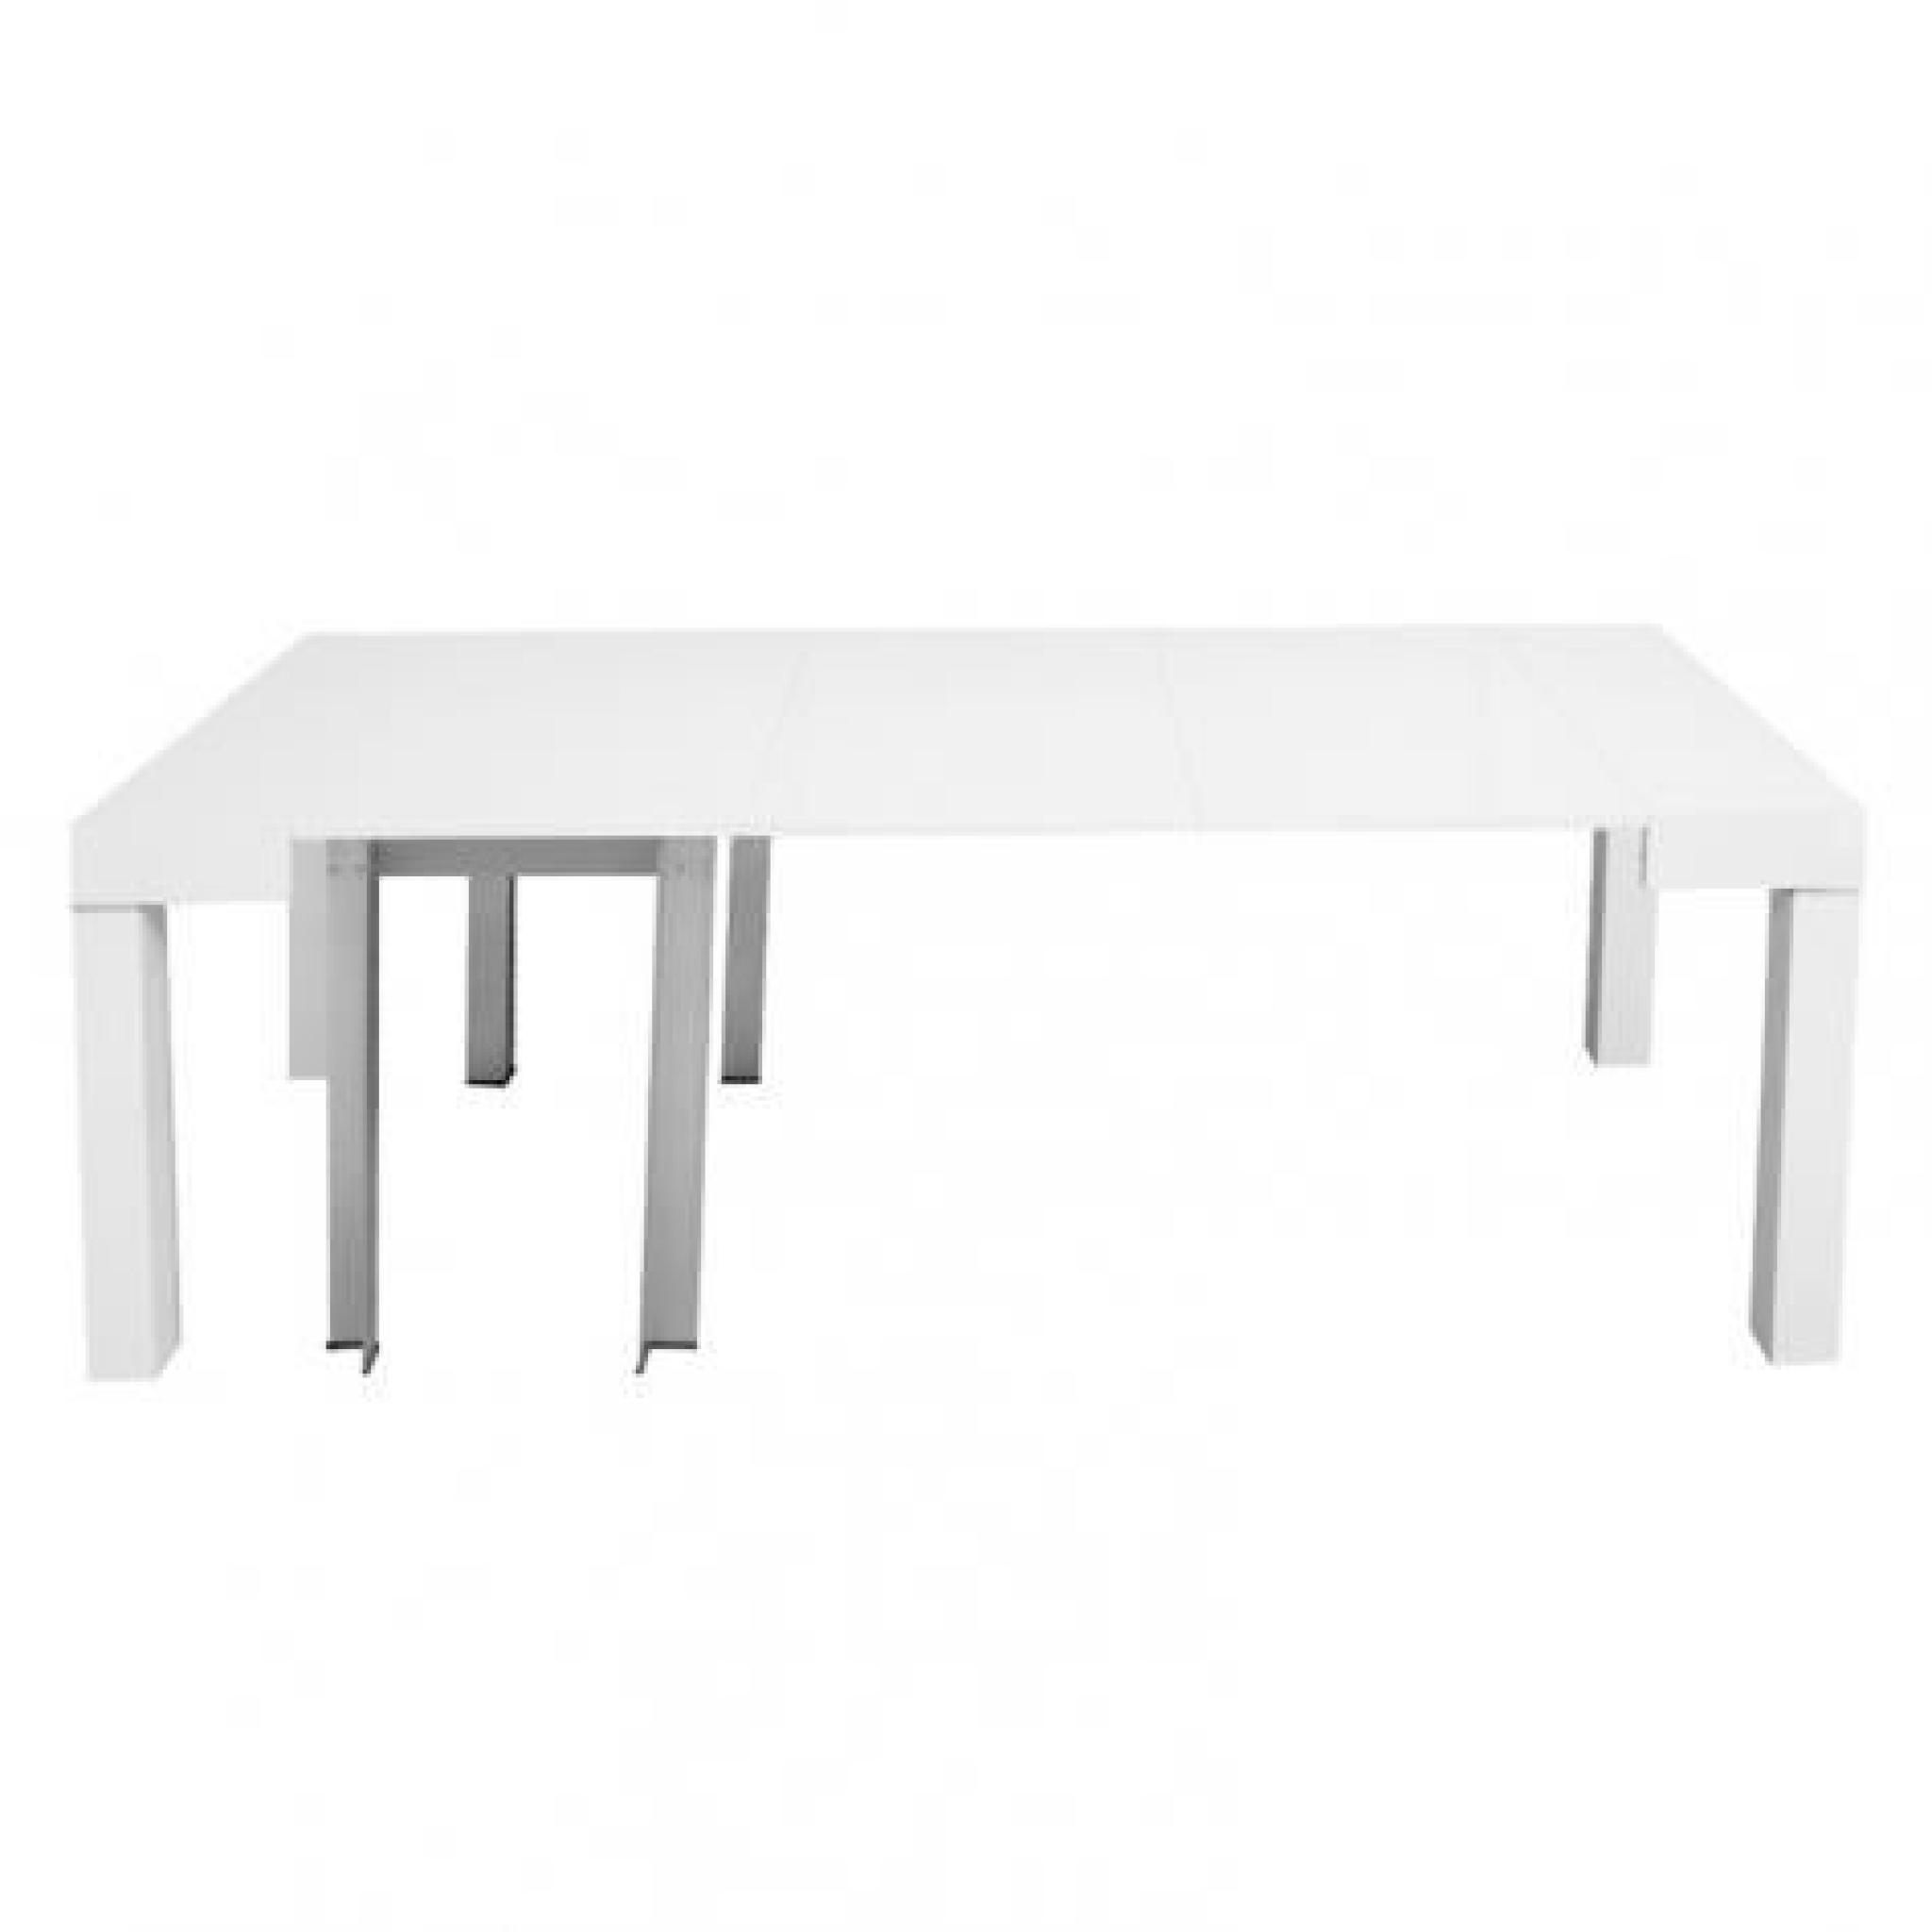 table console blanche provence carte blanche 3 drawer console table lee longlands table blanc. Black Bedroom Furniture Sets. Home Design Ideas